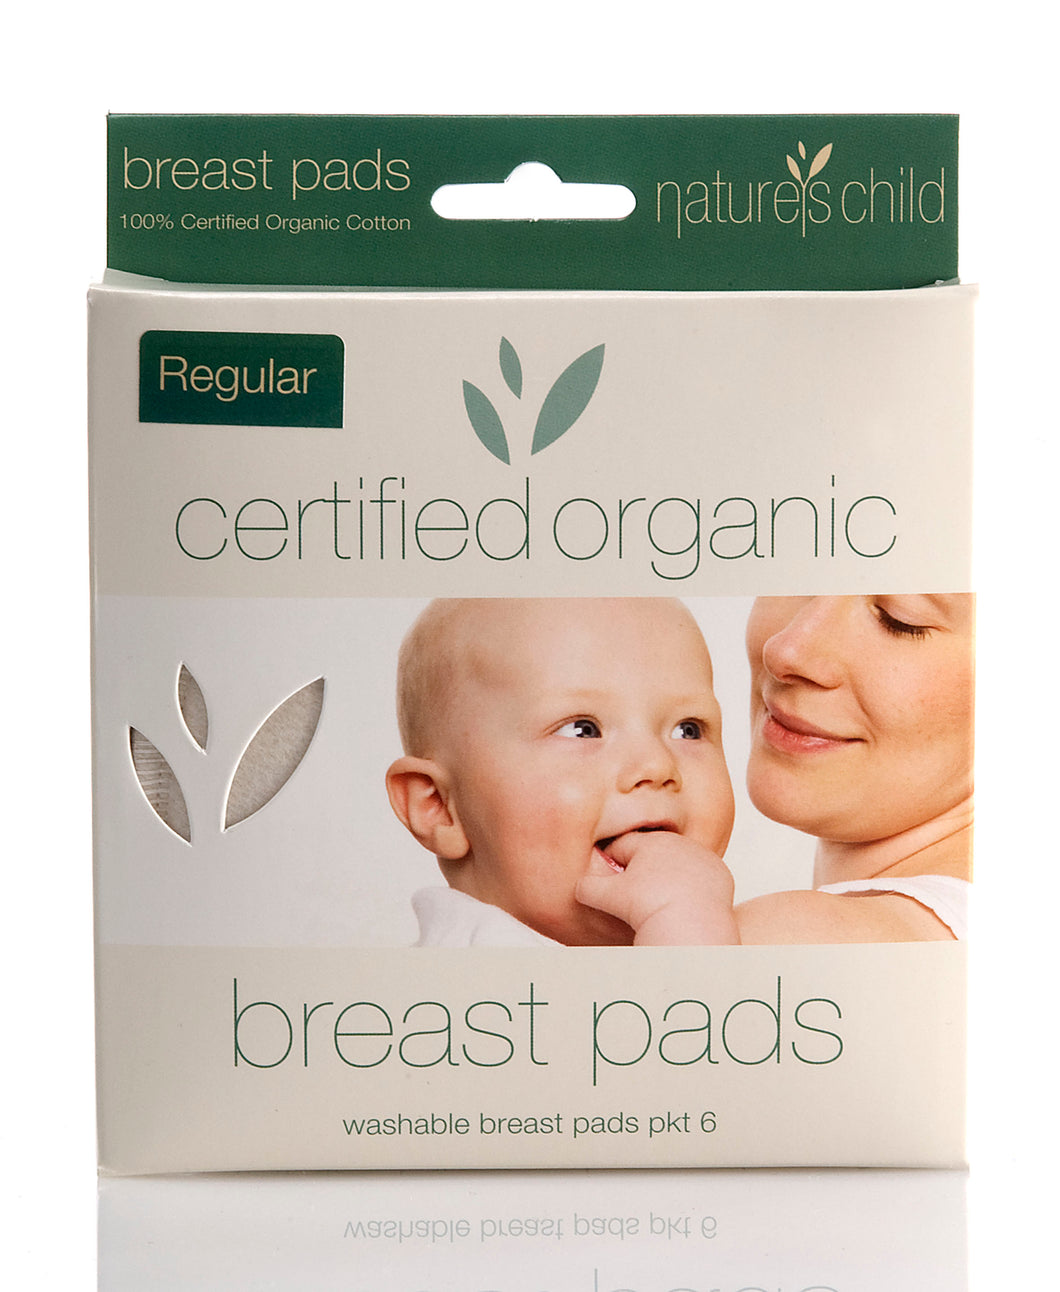 Nature's Child Organic Cotton Washable Breast Pads Pkt 6 - Regular